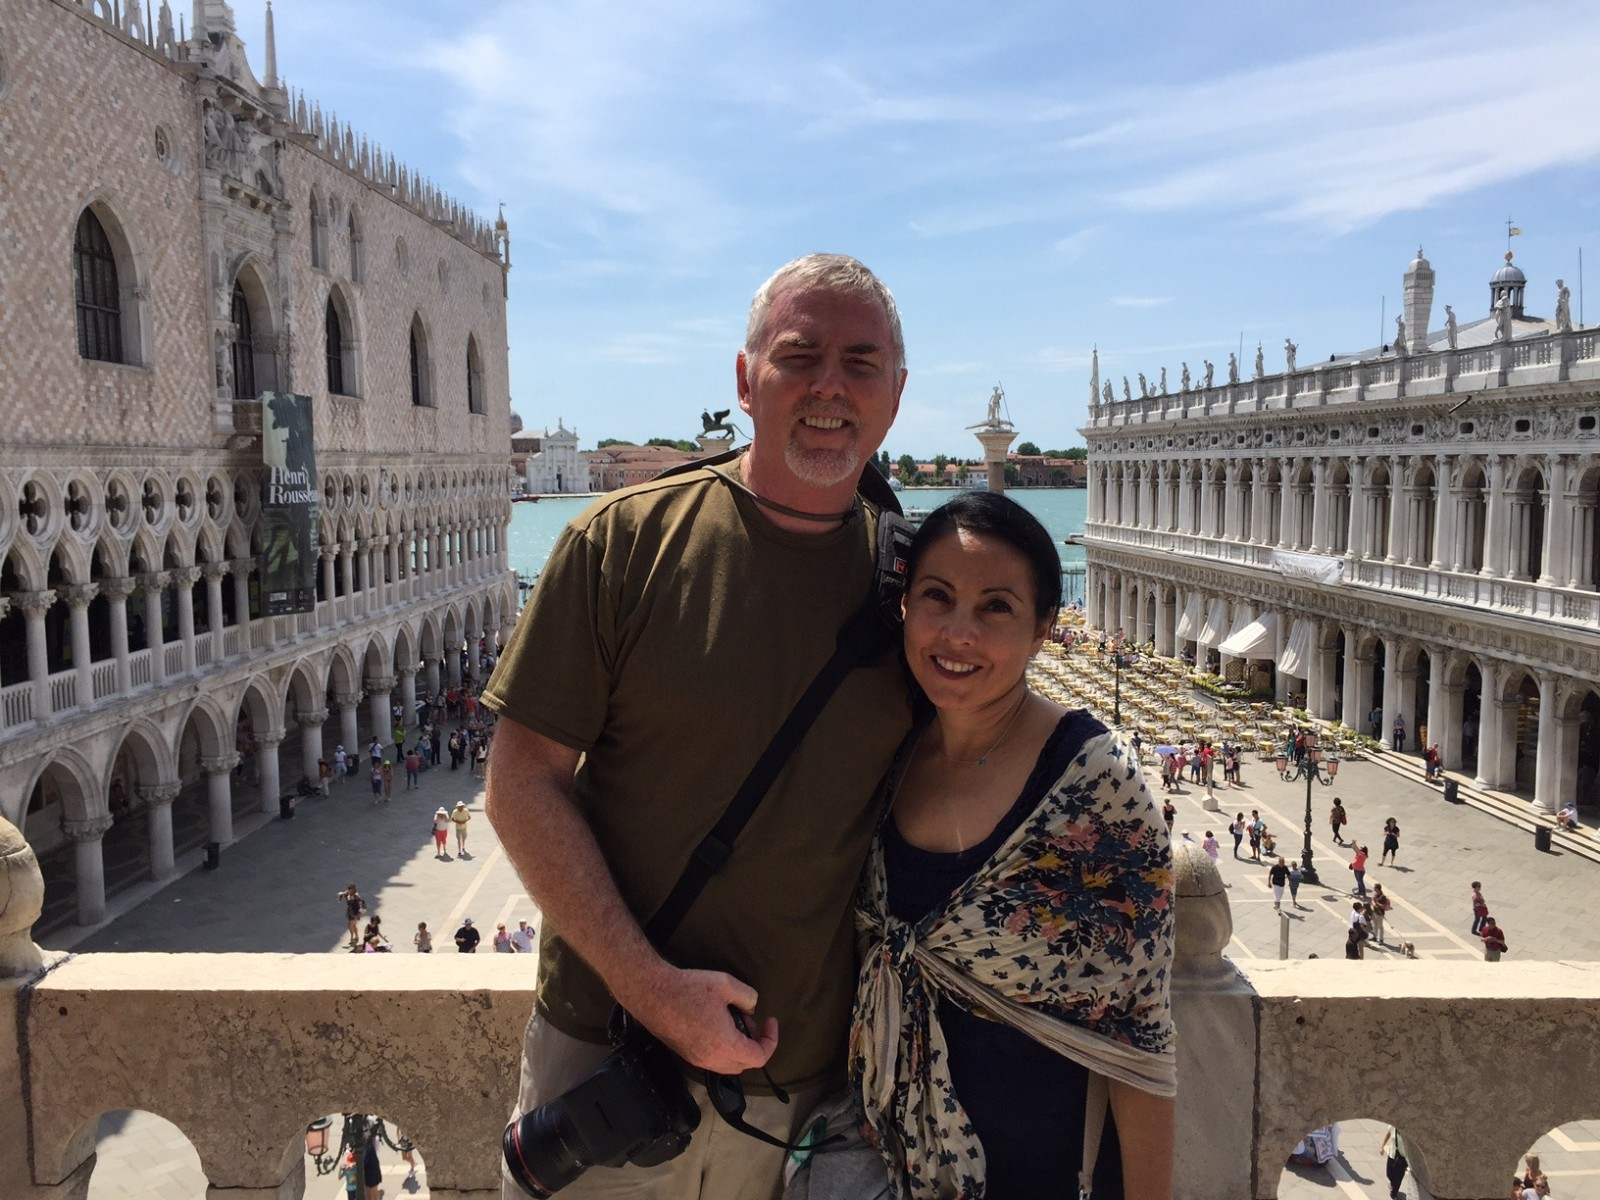 Mike and Veronica in Venezia